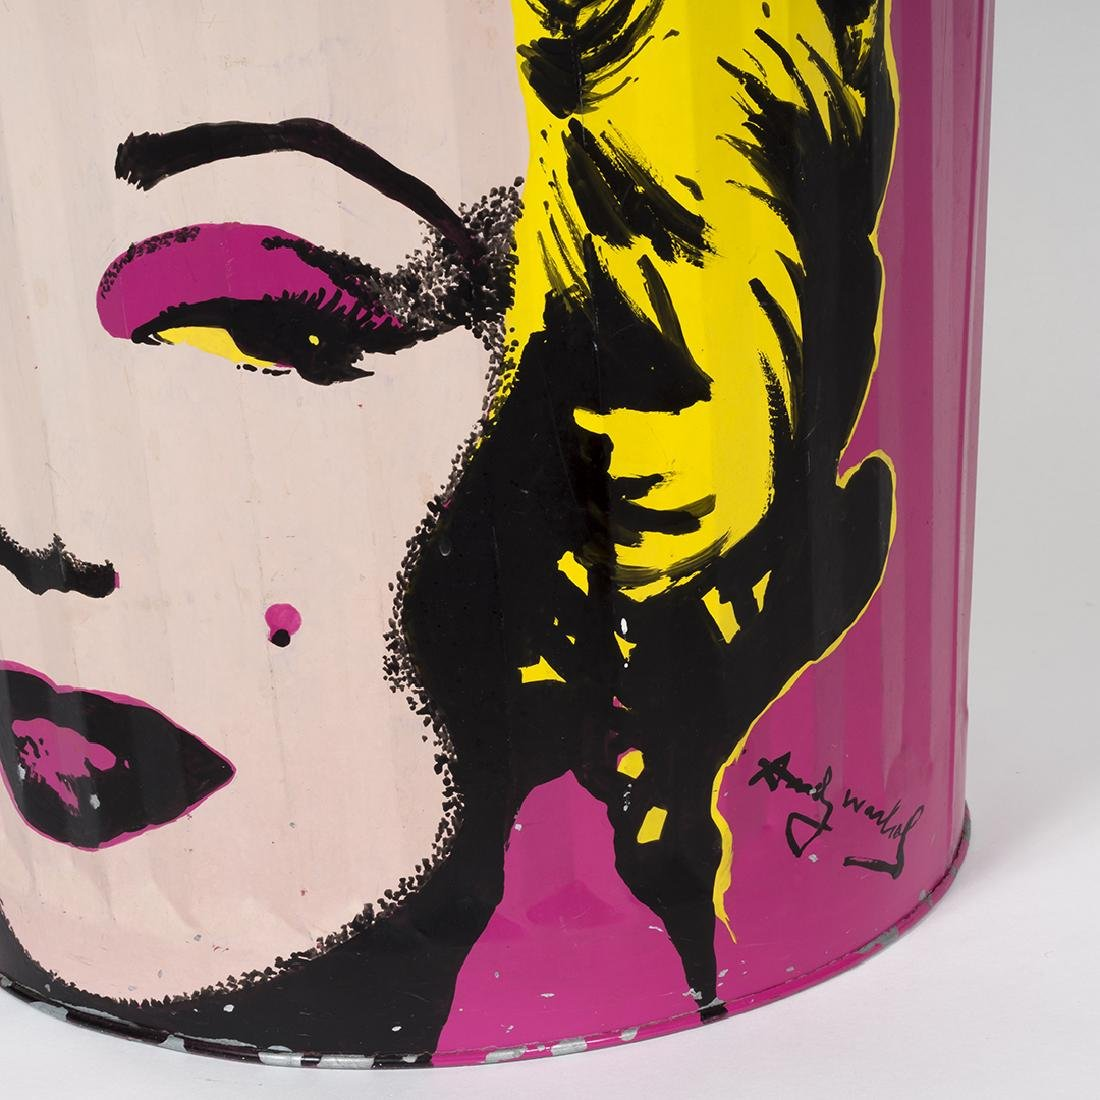 Painted Steel Trash Can After Warhol - 4